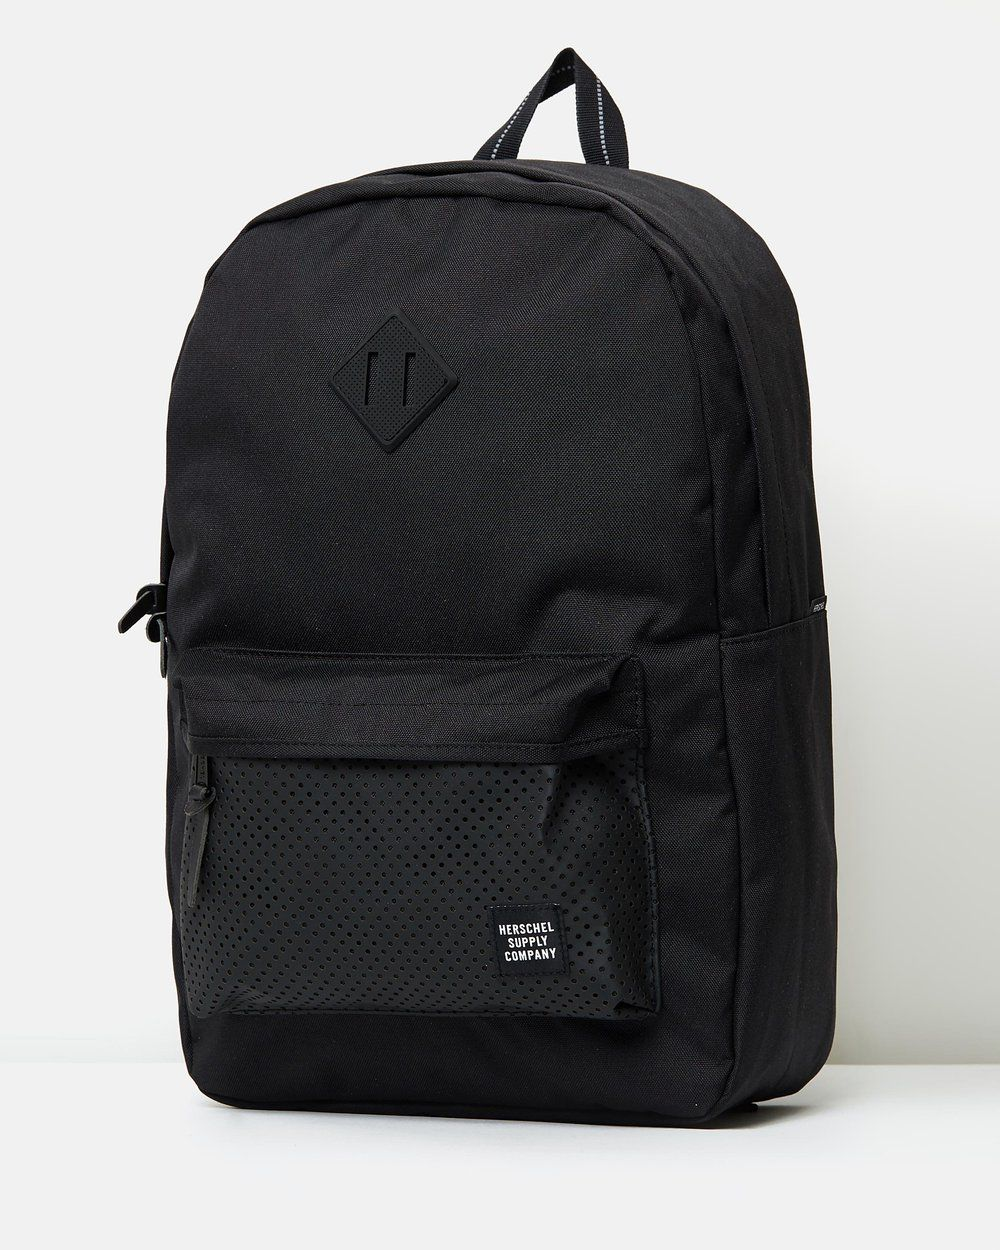 7c0d79f6f0 Image result for rubber lash tab Backpack Bags